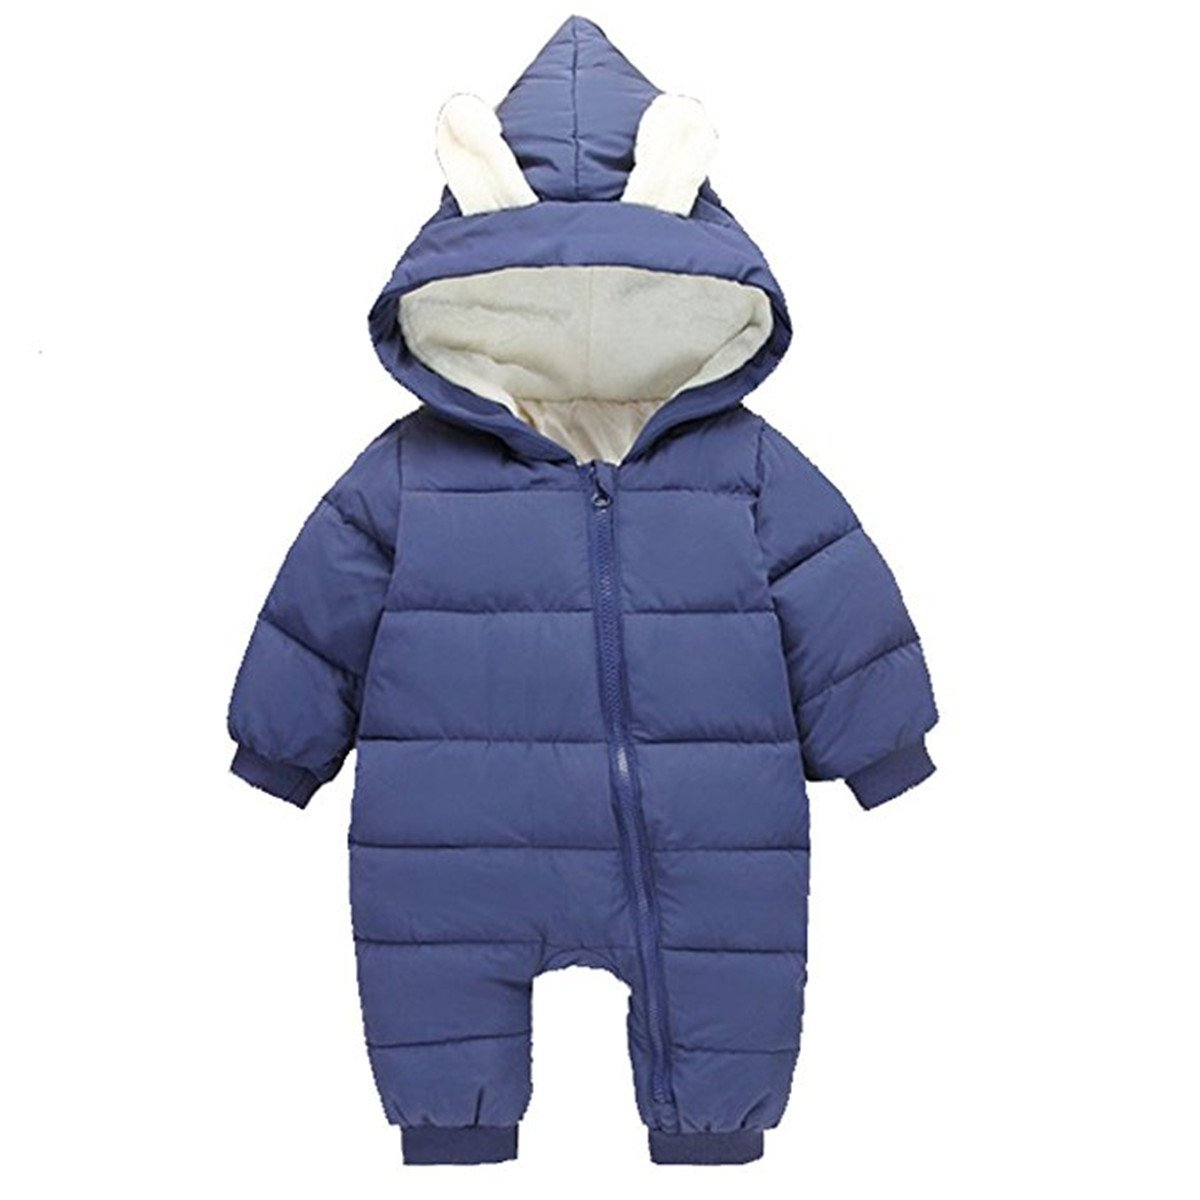 Baby Girls Boys One Piece Winter Hooded Warm Puffer Onesies SnugglyJumpsuit Snowsuit Romper